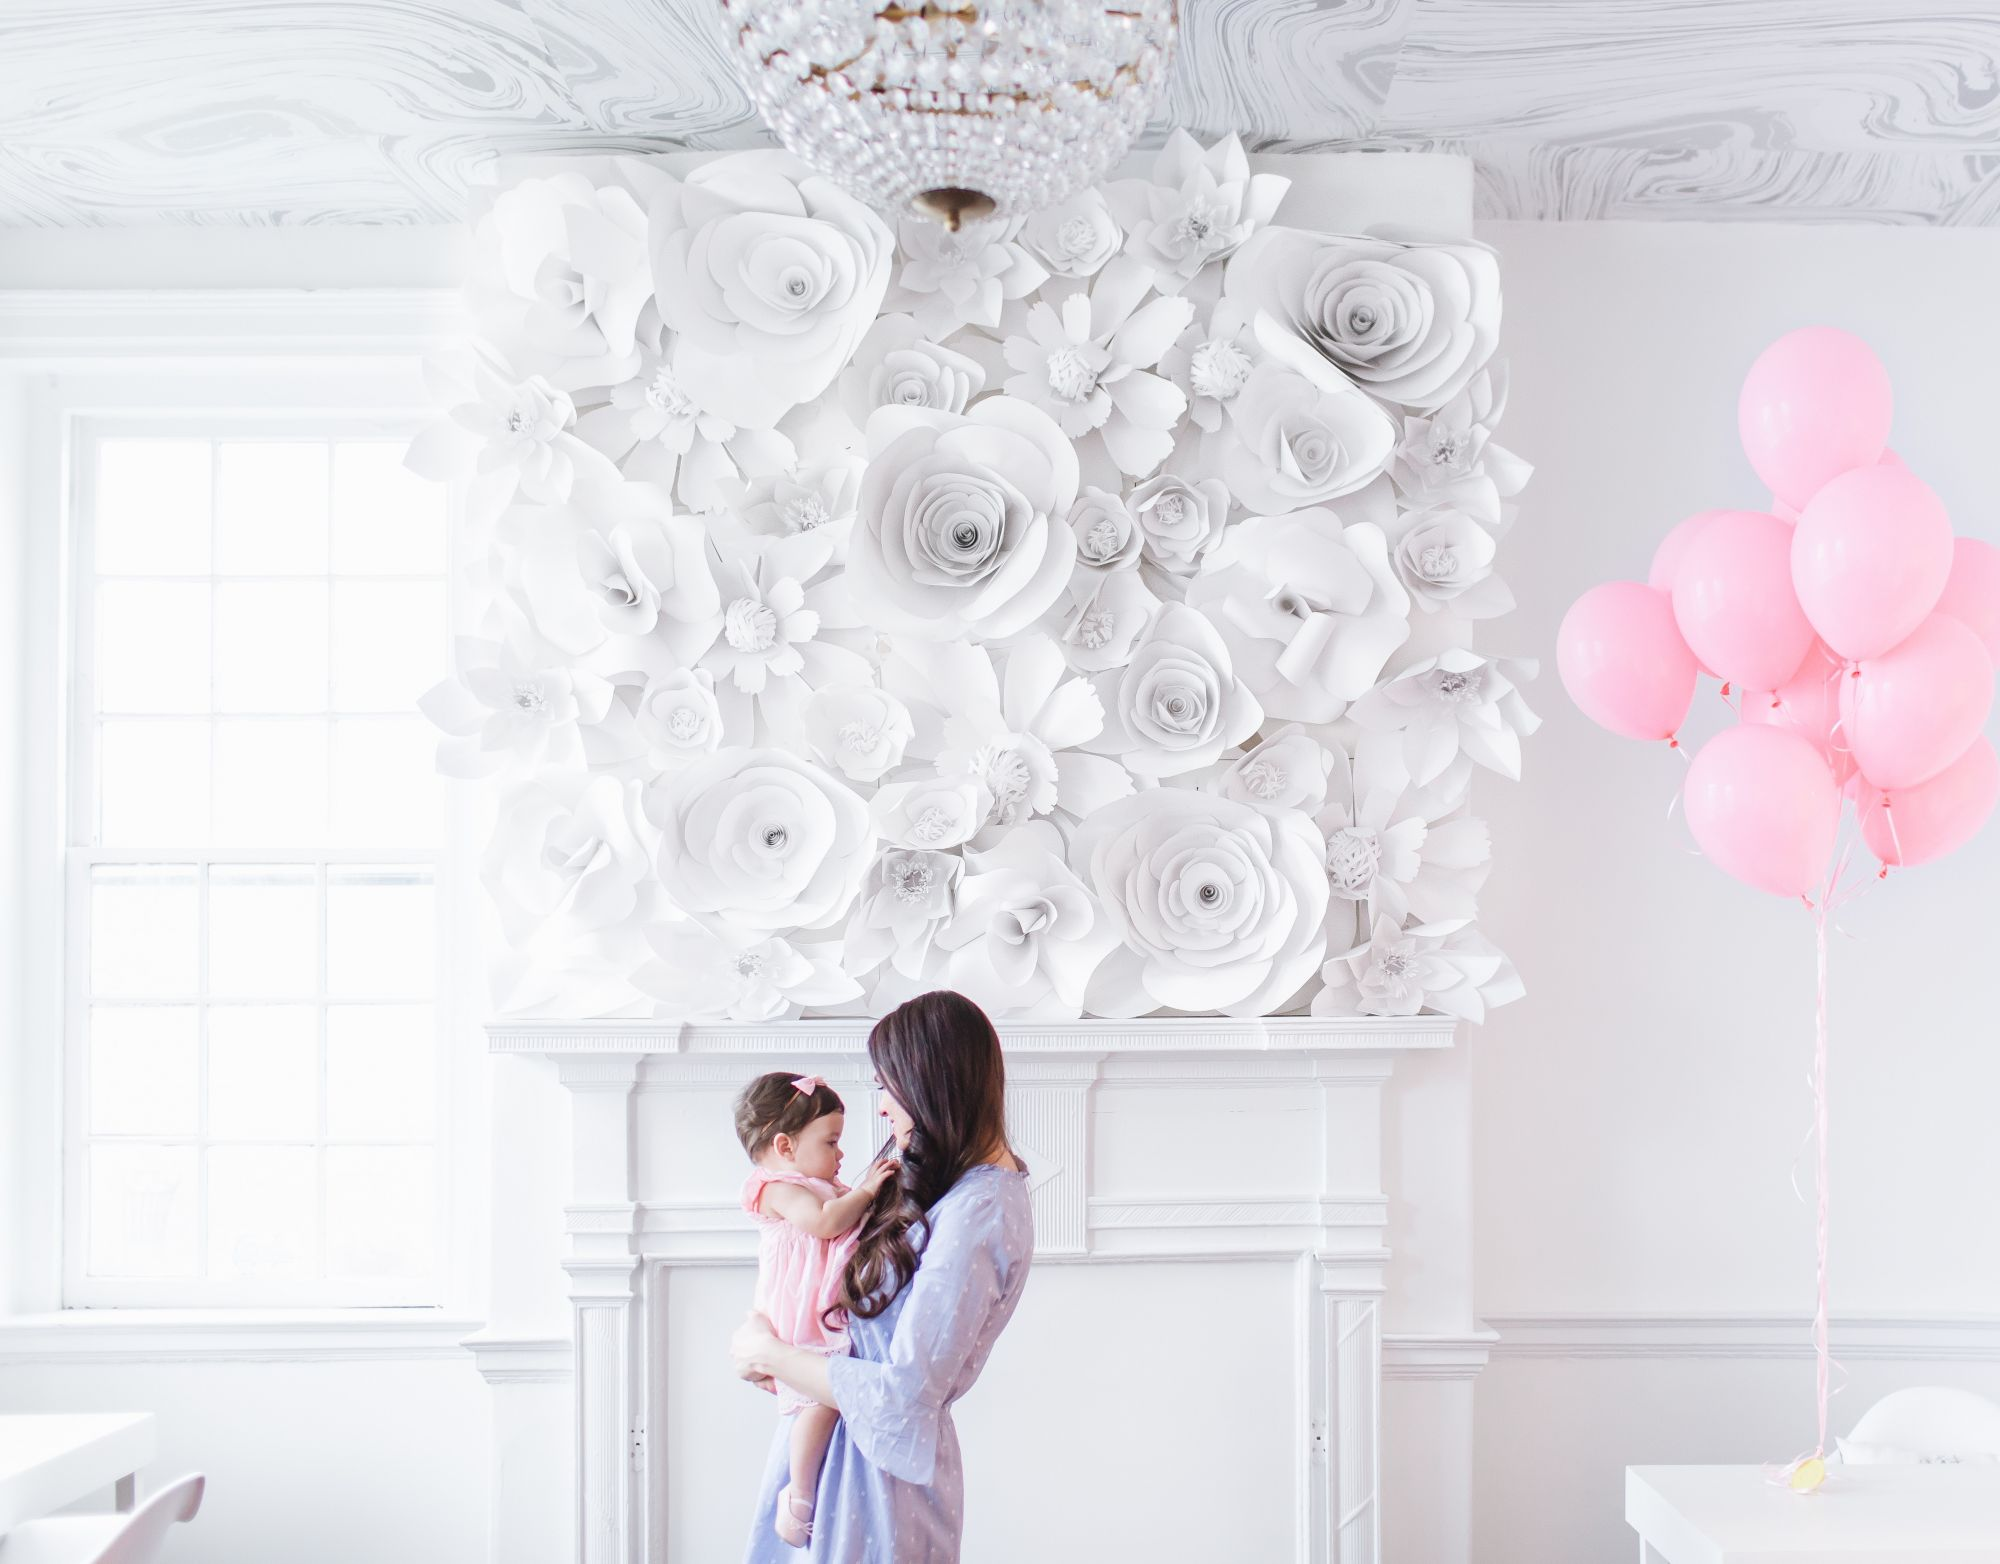 5 Things That All New Mothers Want On Mother's Day